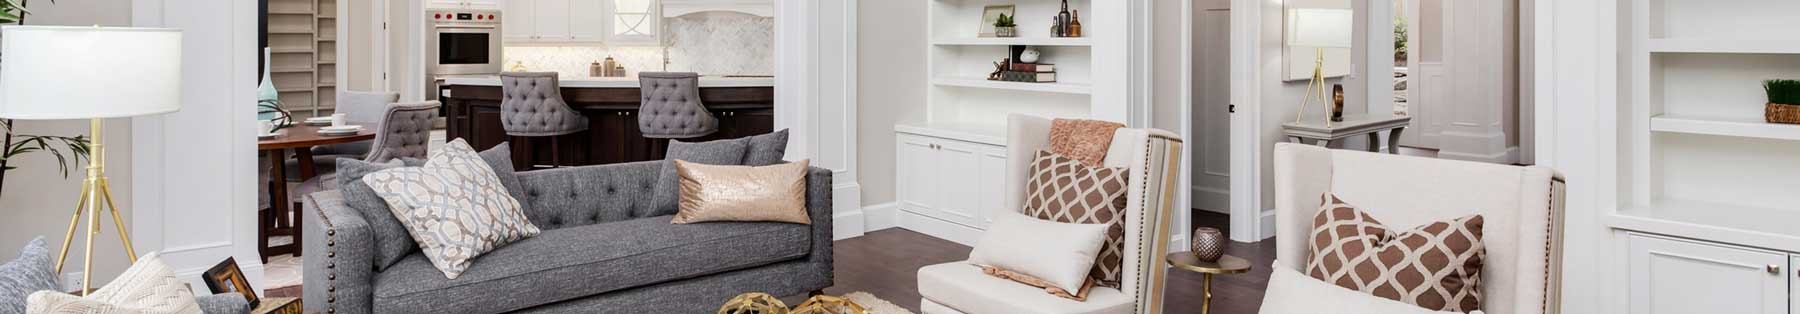 Home interior header